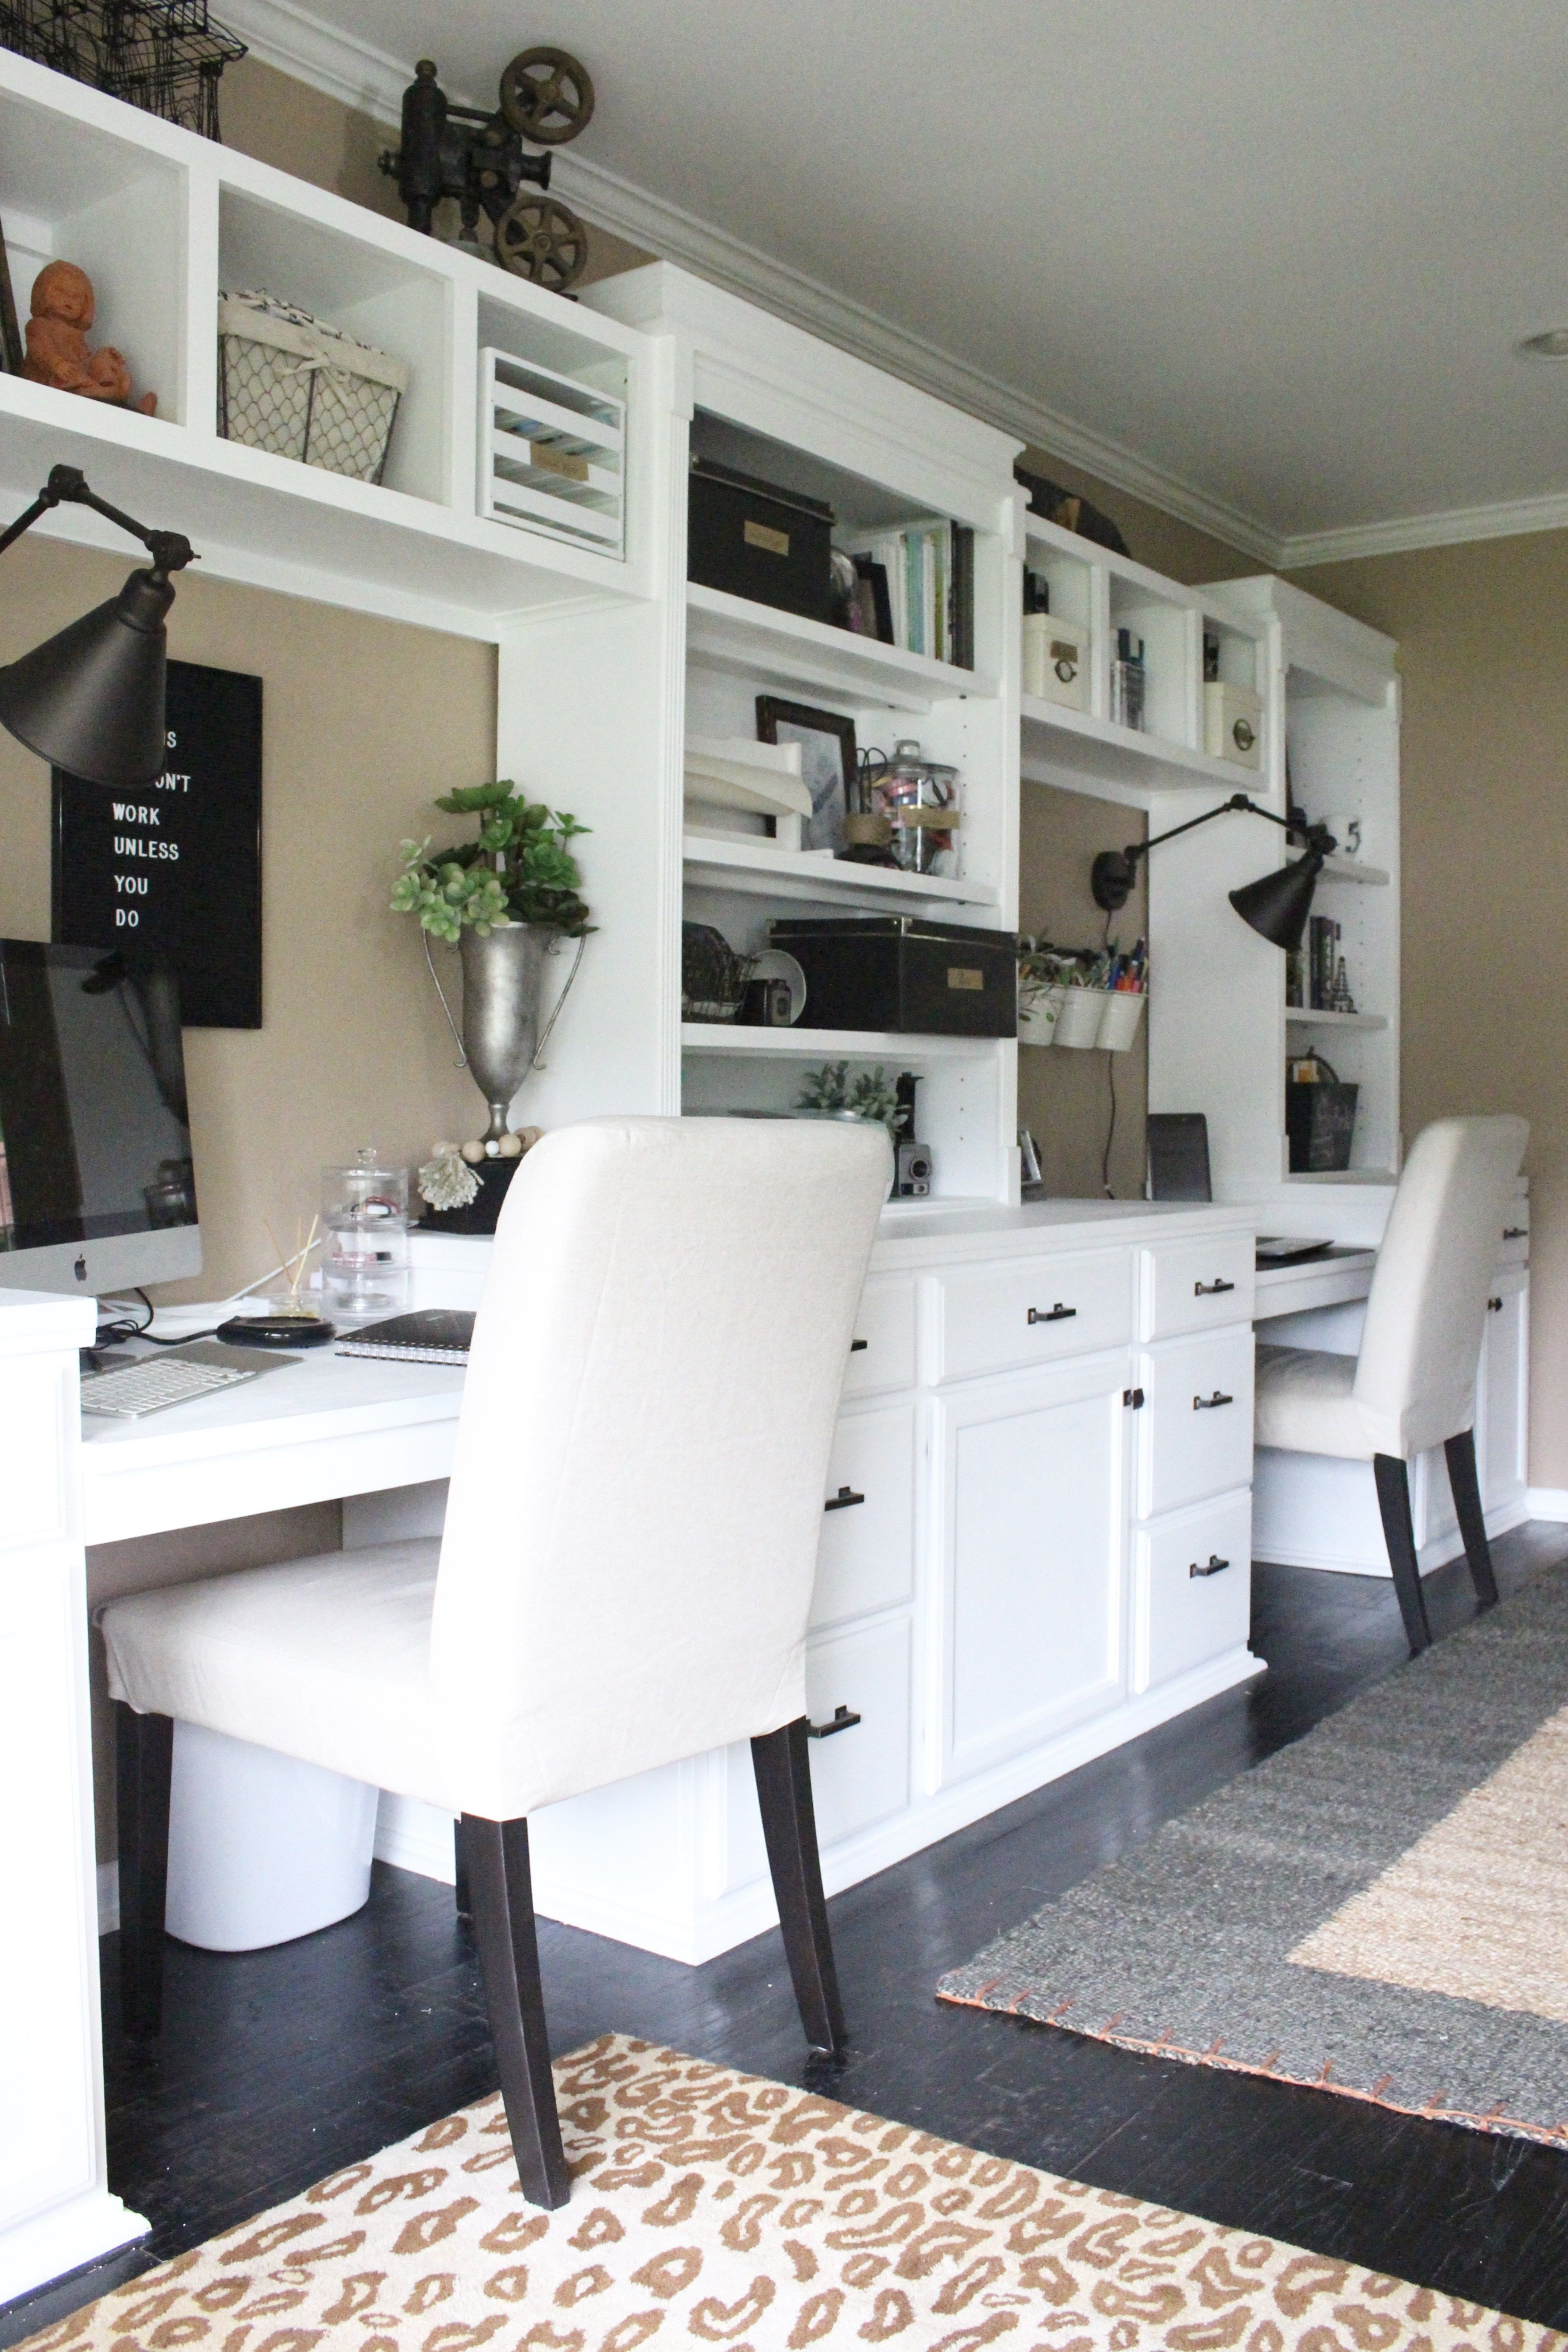 Home office craft room reveal space supply storage ideas one challenge renovation tour makeover also grey cabinets house in design rh pinterest